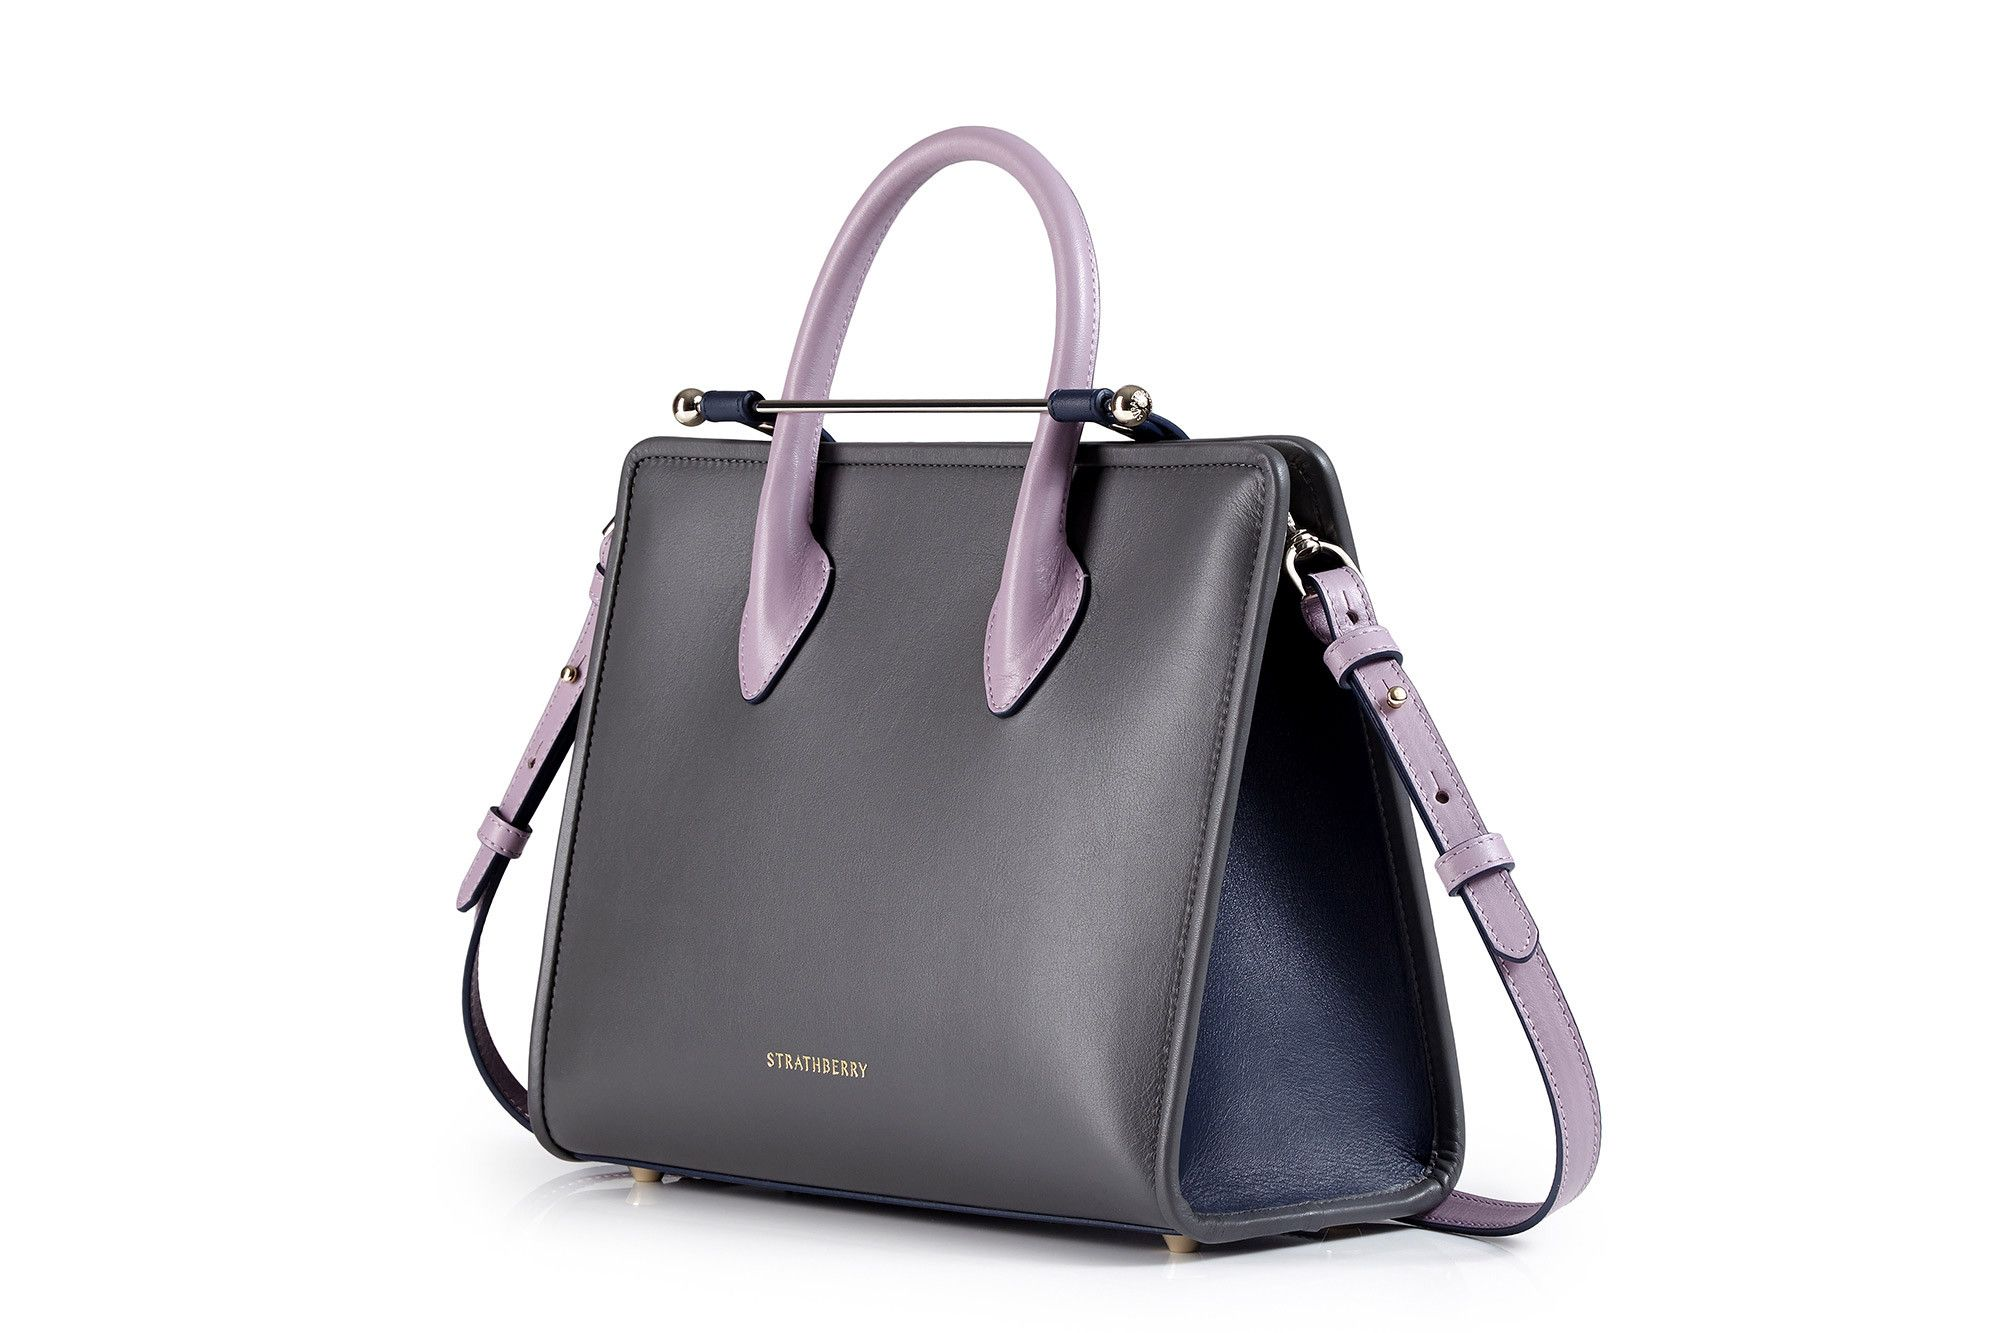 2828405cb316 The Strathberry Midi Tote - Charcoal Navy Lilac. Find this Pin and more on  Bag ...